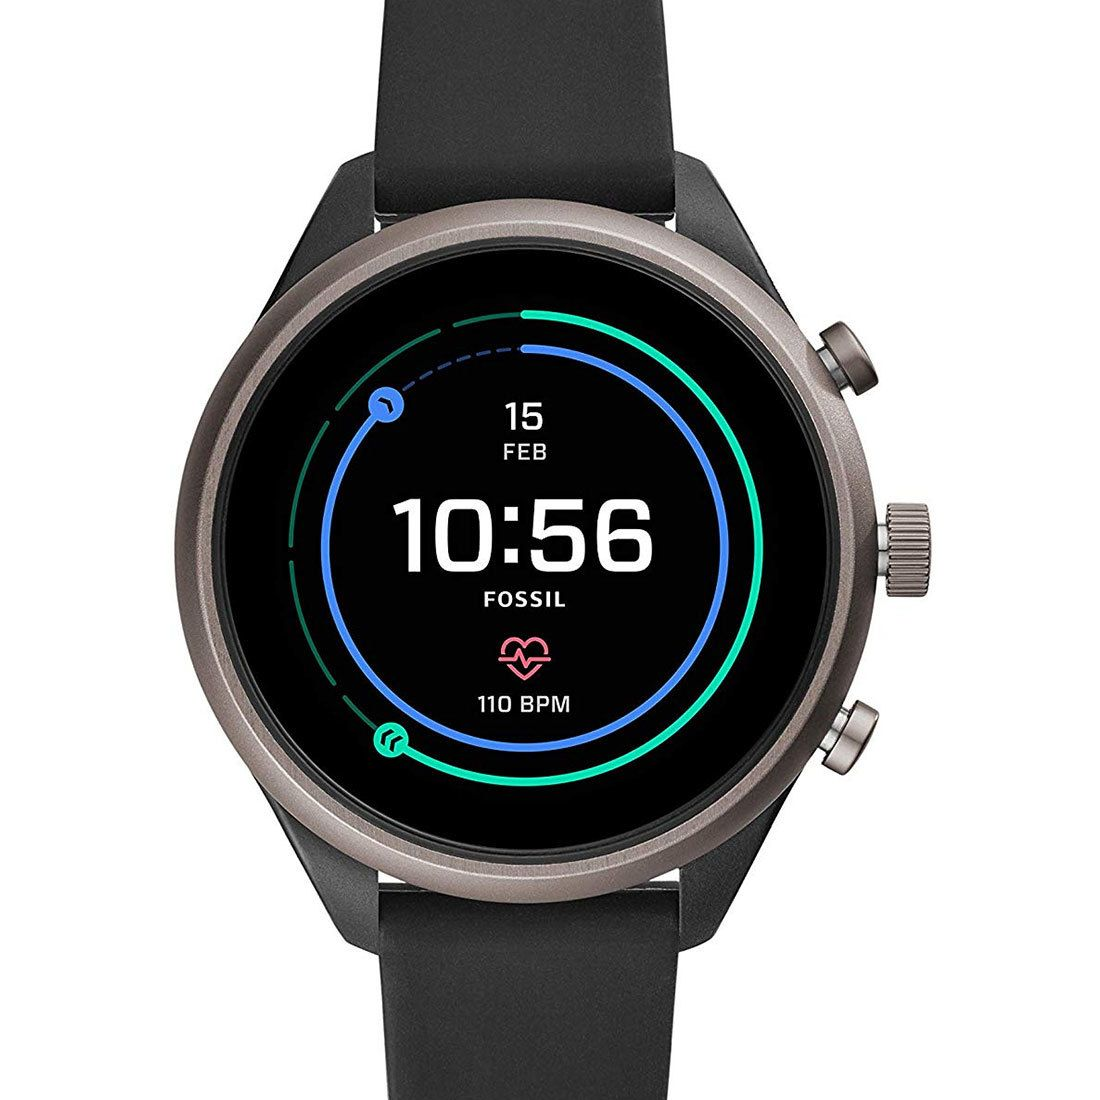 Fossil Sports Ladies Smartwatch FTW6024 (BACKORDER) in